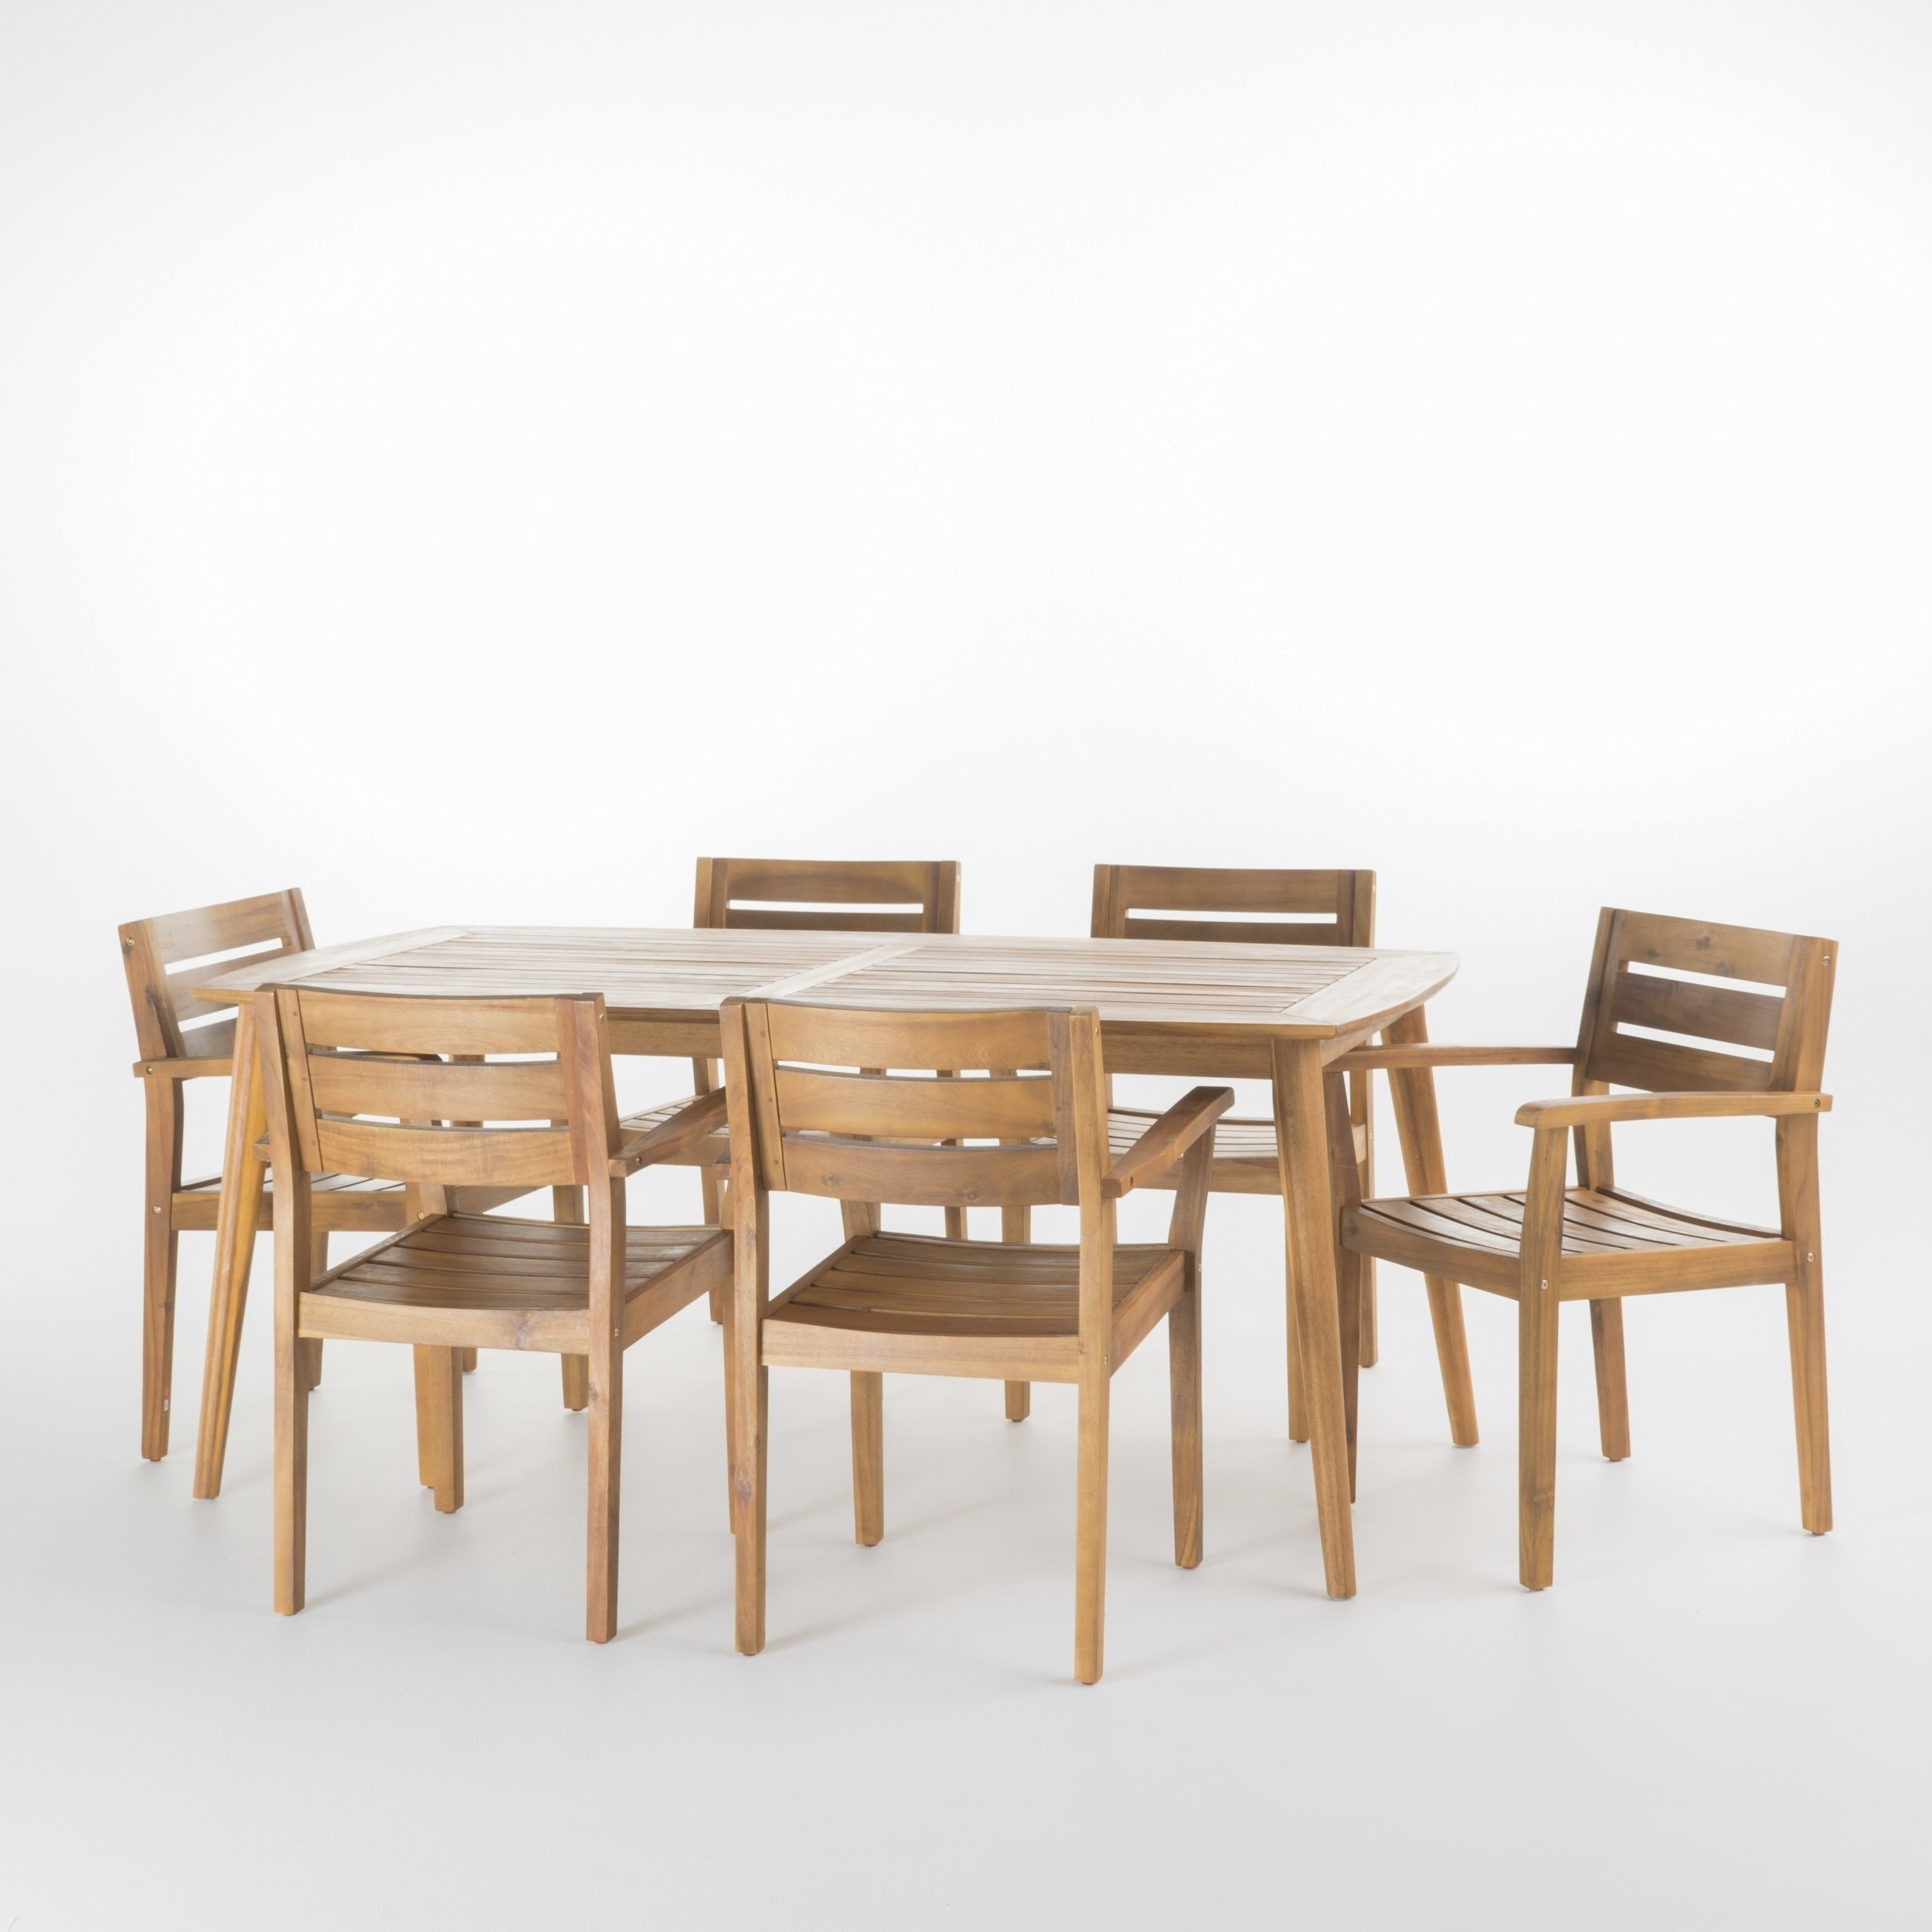 Shop Stamford Outdoor 7 Piece Rectangle Acacia Wood Dining Set Intended For Most Recent Laurent 7 Piece Rectangle Dining Sets With Wood And Host Chairs (View 2 of 25)